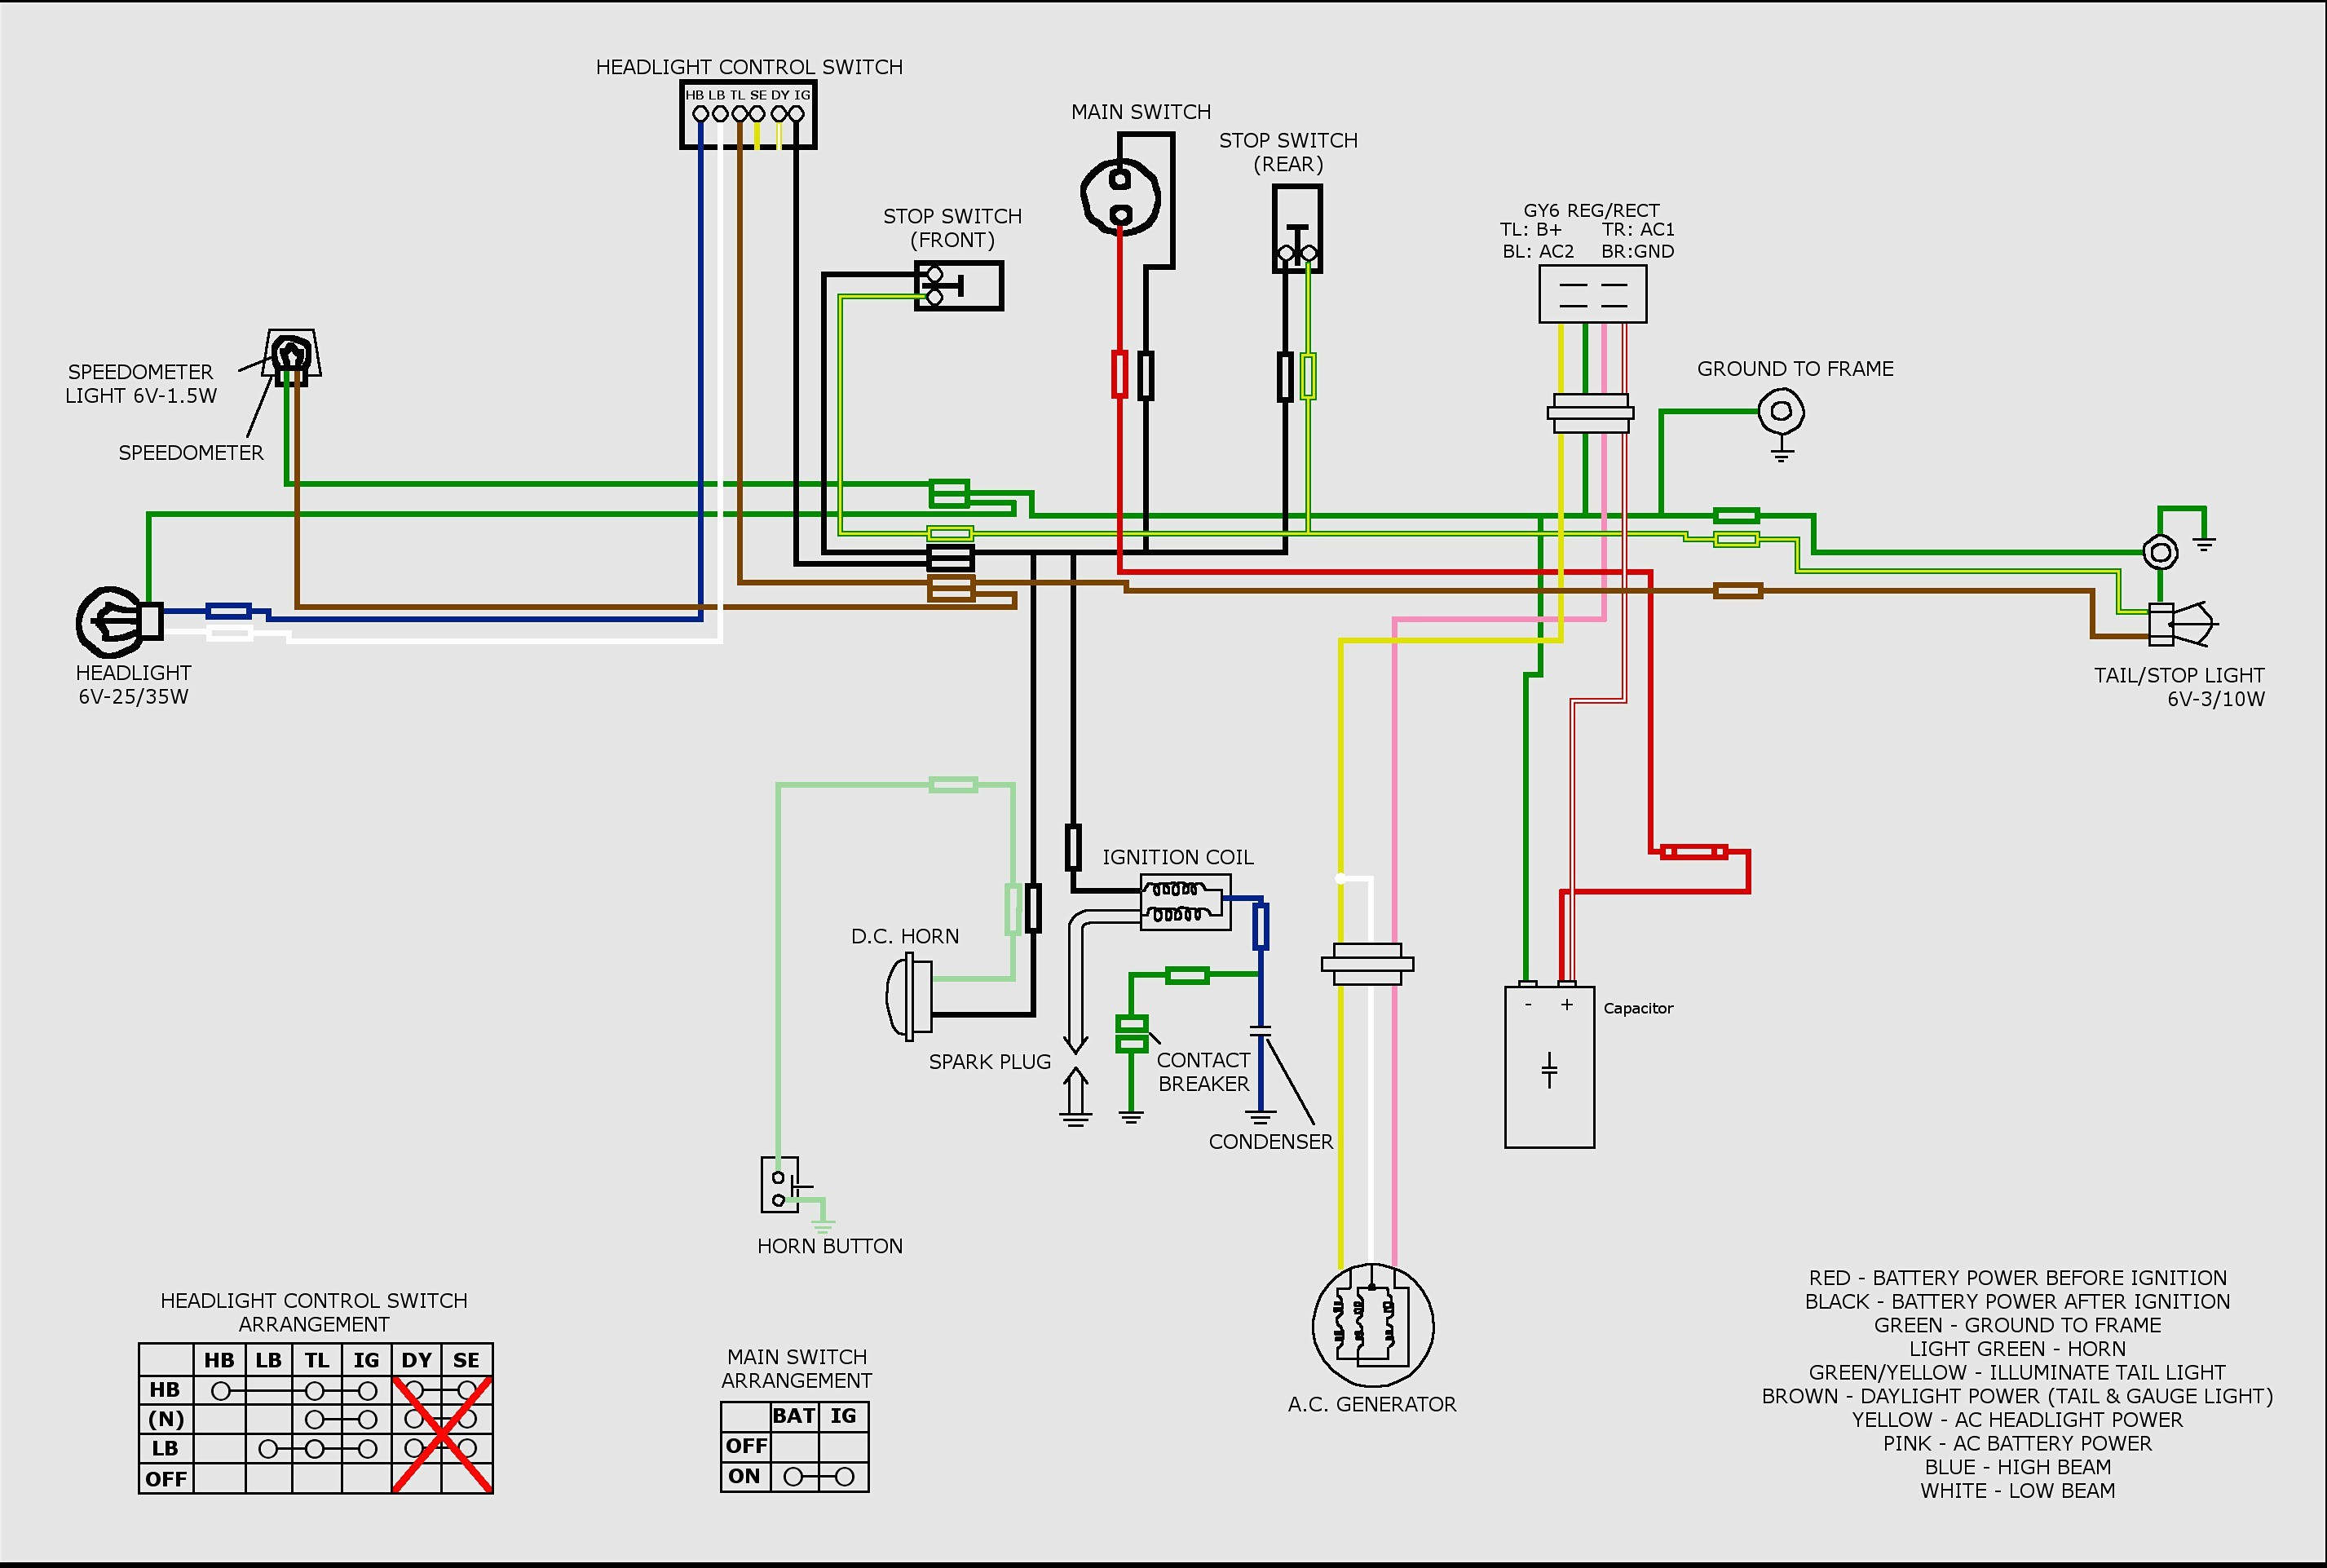 China 49cc Scooter Cdi Wiring Diagram - Sunpro Ammeter Wiring Diagram for Wiring  Diagram SchematicsWiring Diagram Schematics